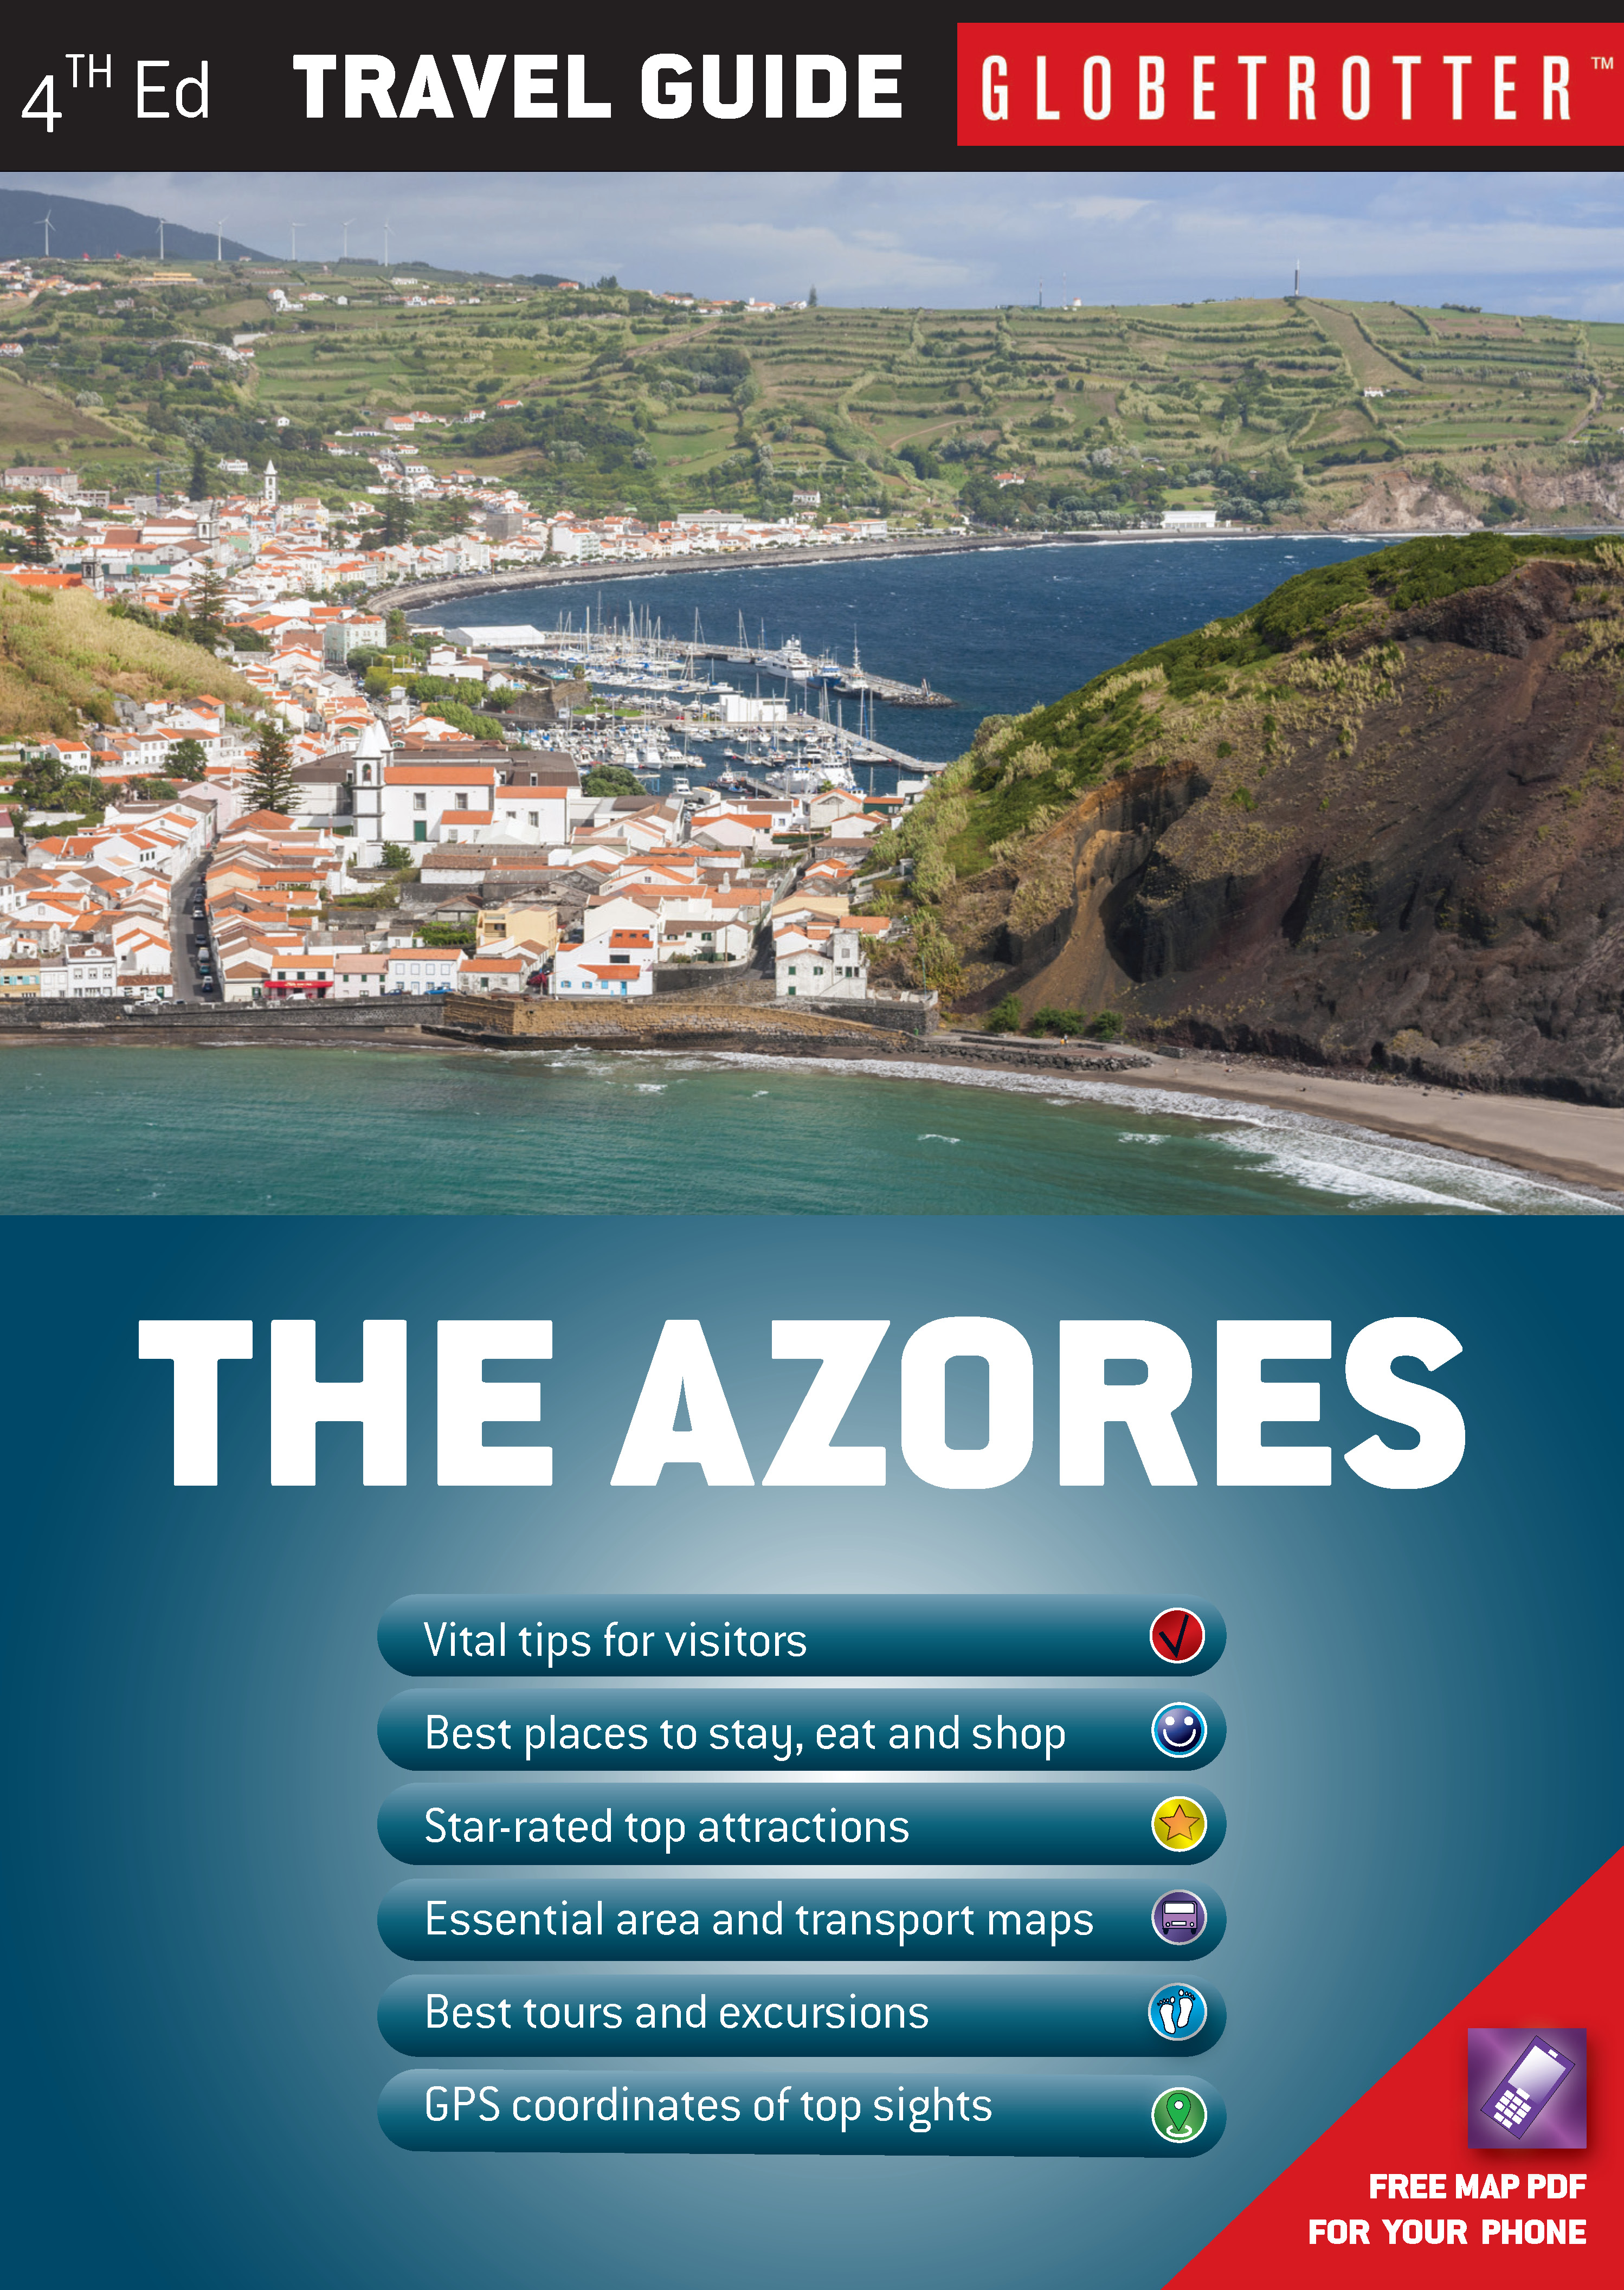 The azores travel guide ebook mapstudio azores travel guide ebook gumiabroncs Choice Image